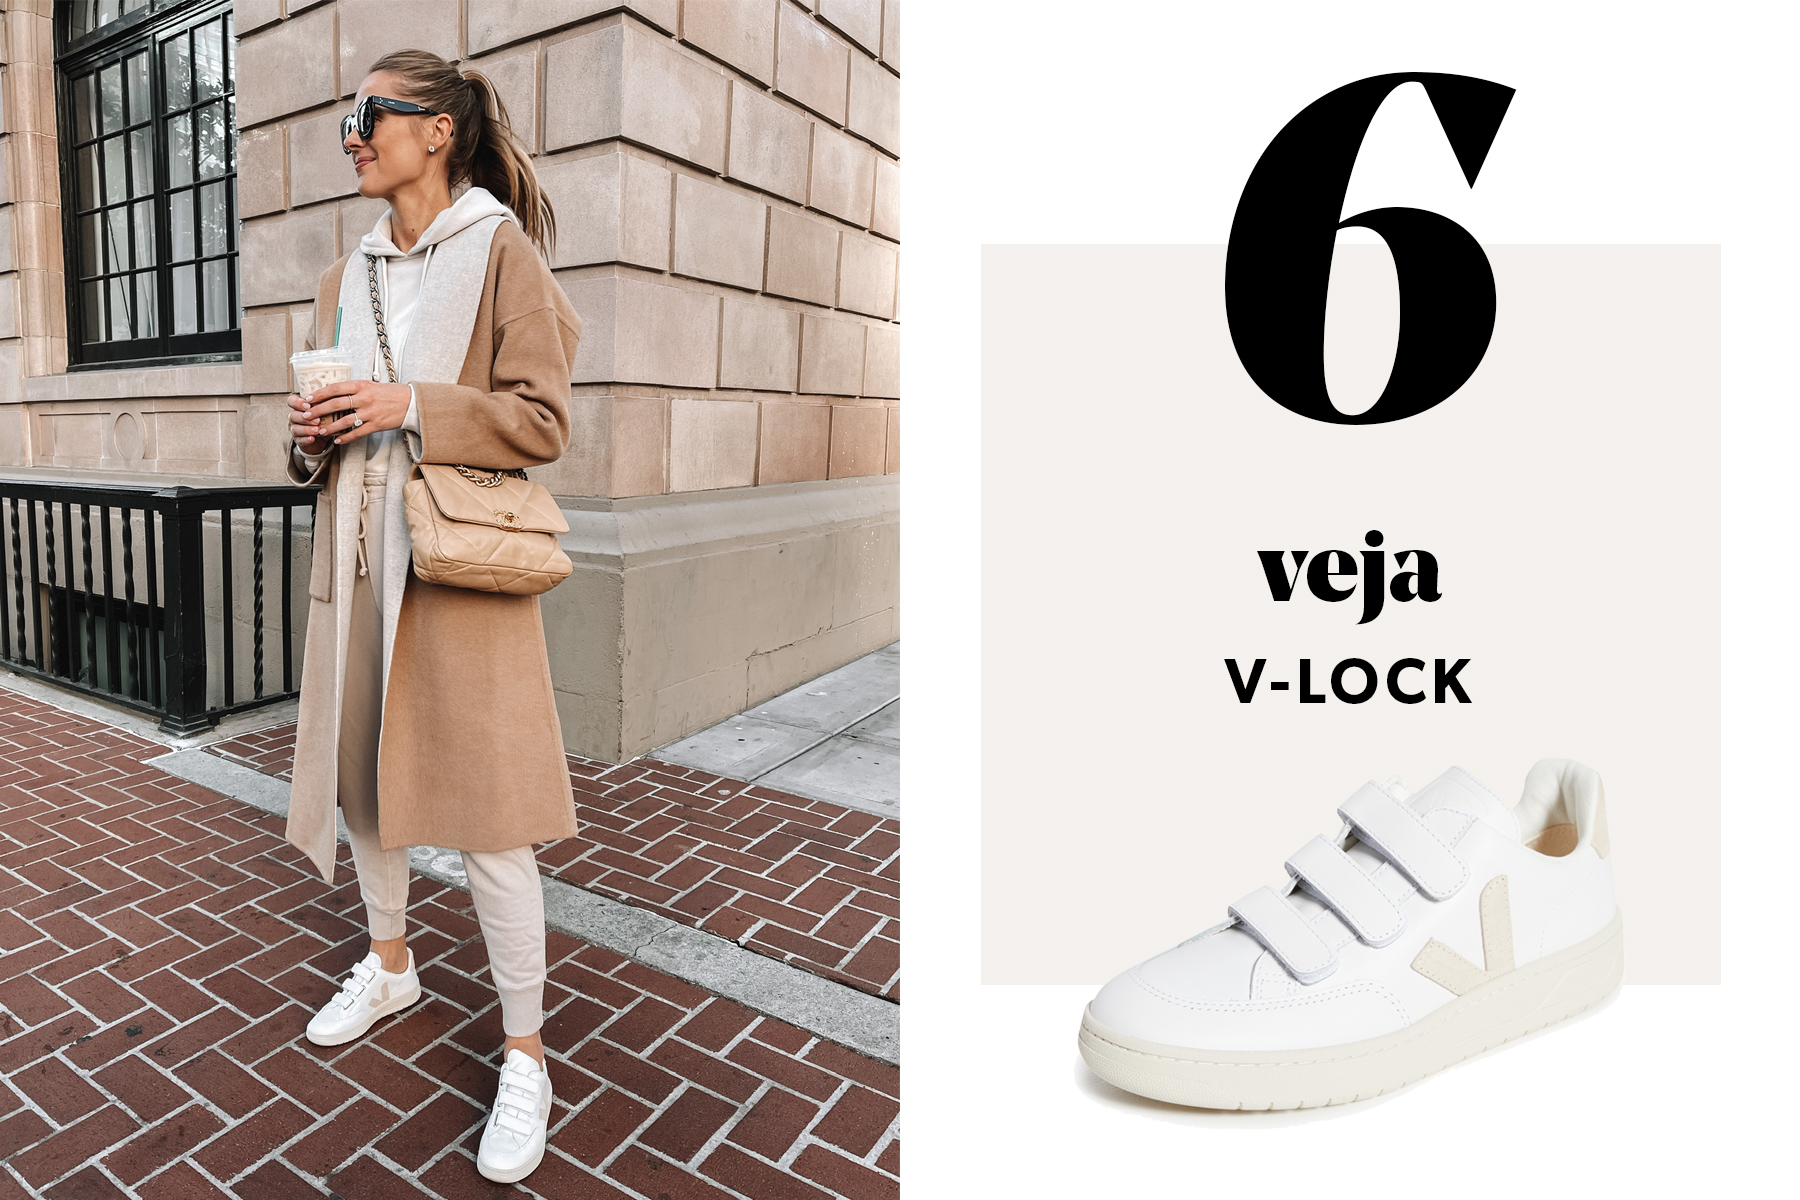 fashion jackson wearing veja vlock sneakers outfit